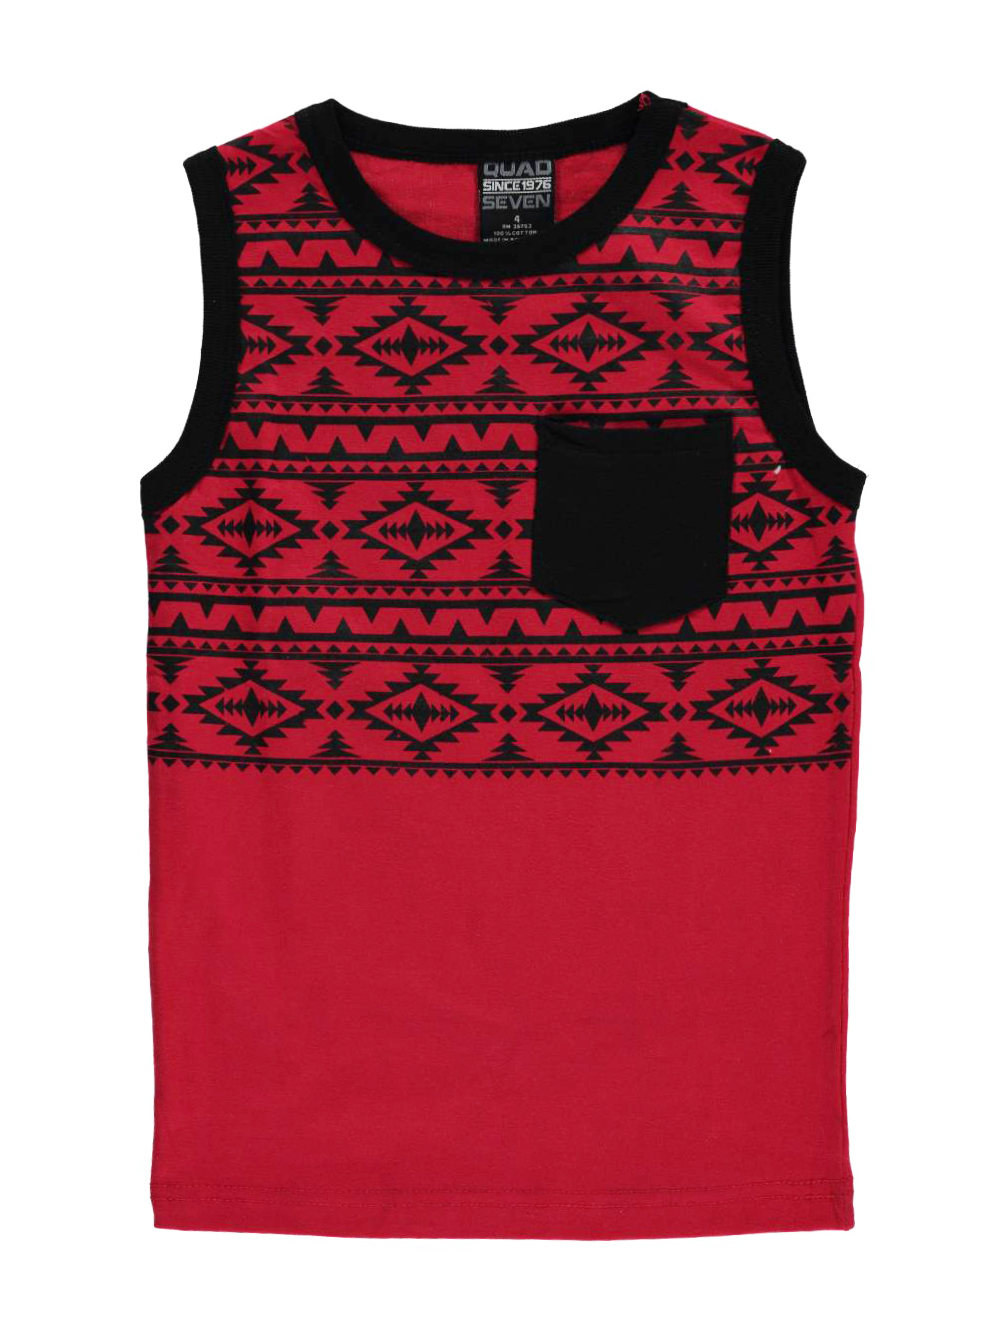 Image of Quad Seven Little Boys Toddler Tribal Upper Sleeveless TShirt Sizes 2T  4T  red 3t